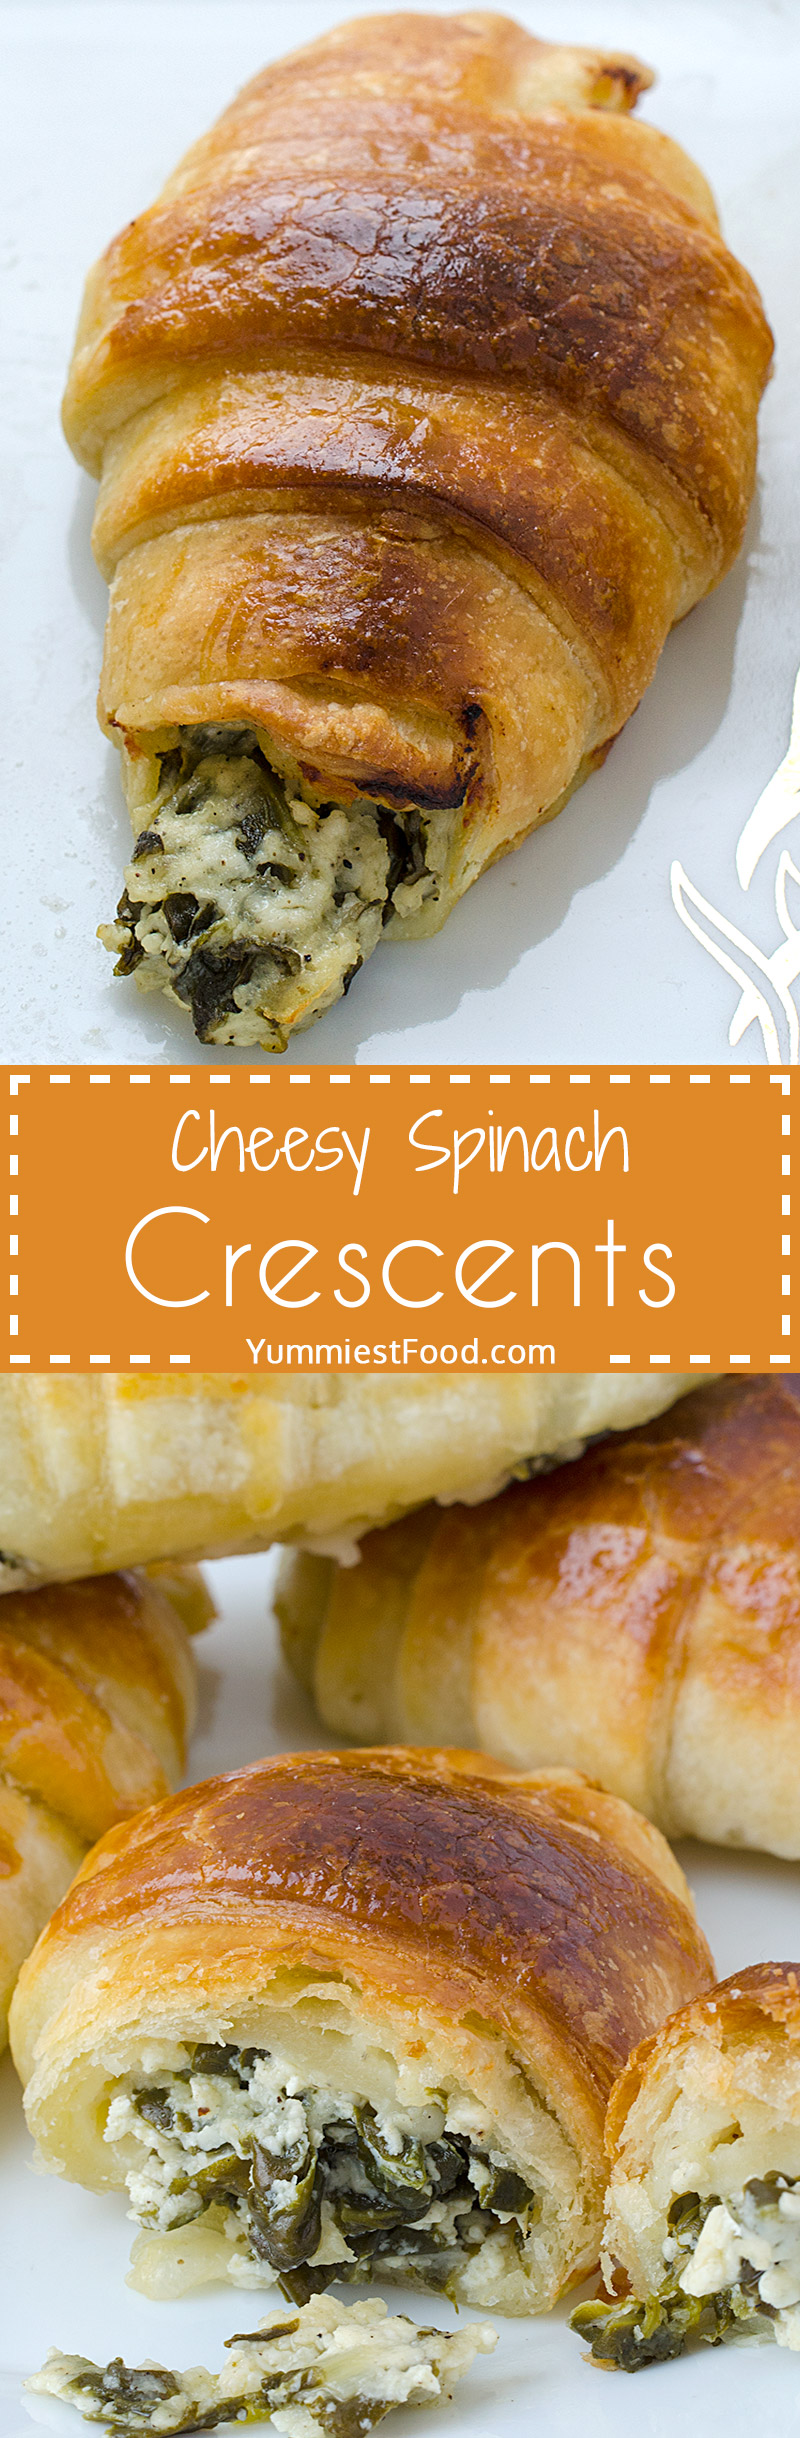 Cheesy Spinach Crescents - puff pastry, so delicious and soft! You you need only 20 minutes for them.